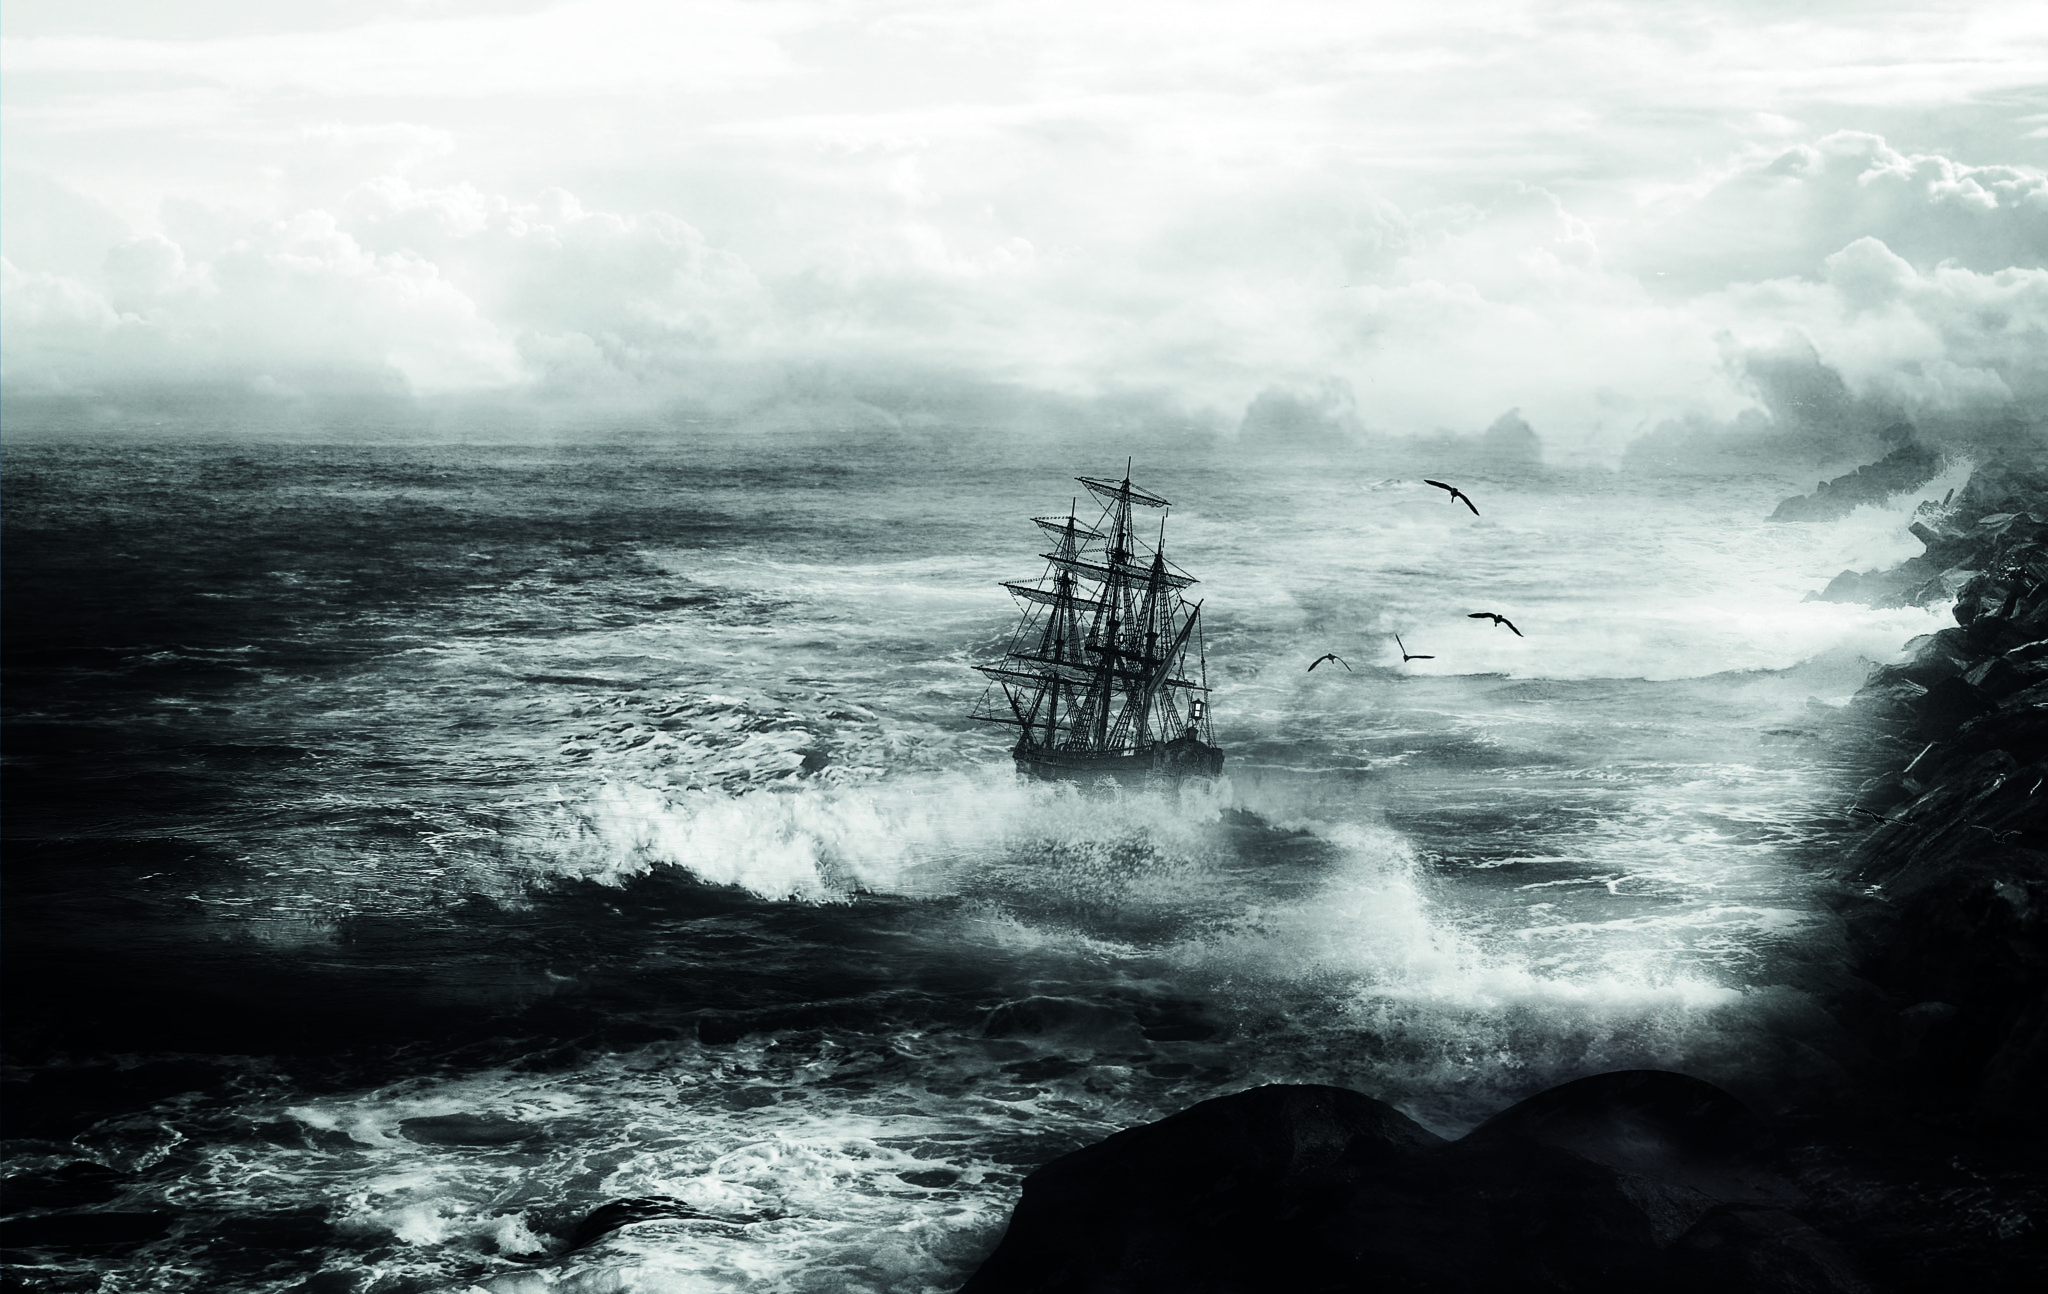 Photograph good ol' ship by Florian Gampert on 500px